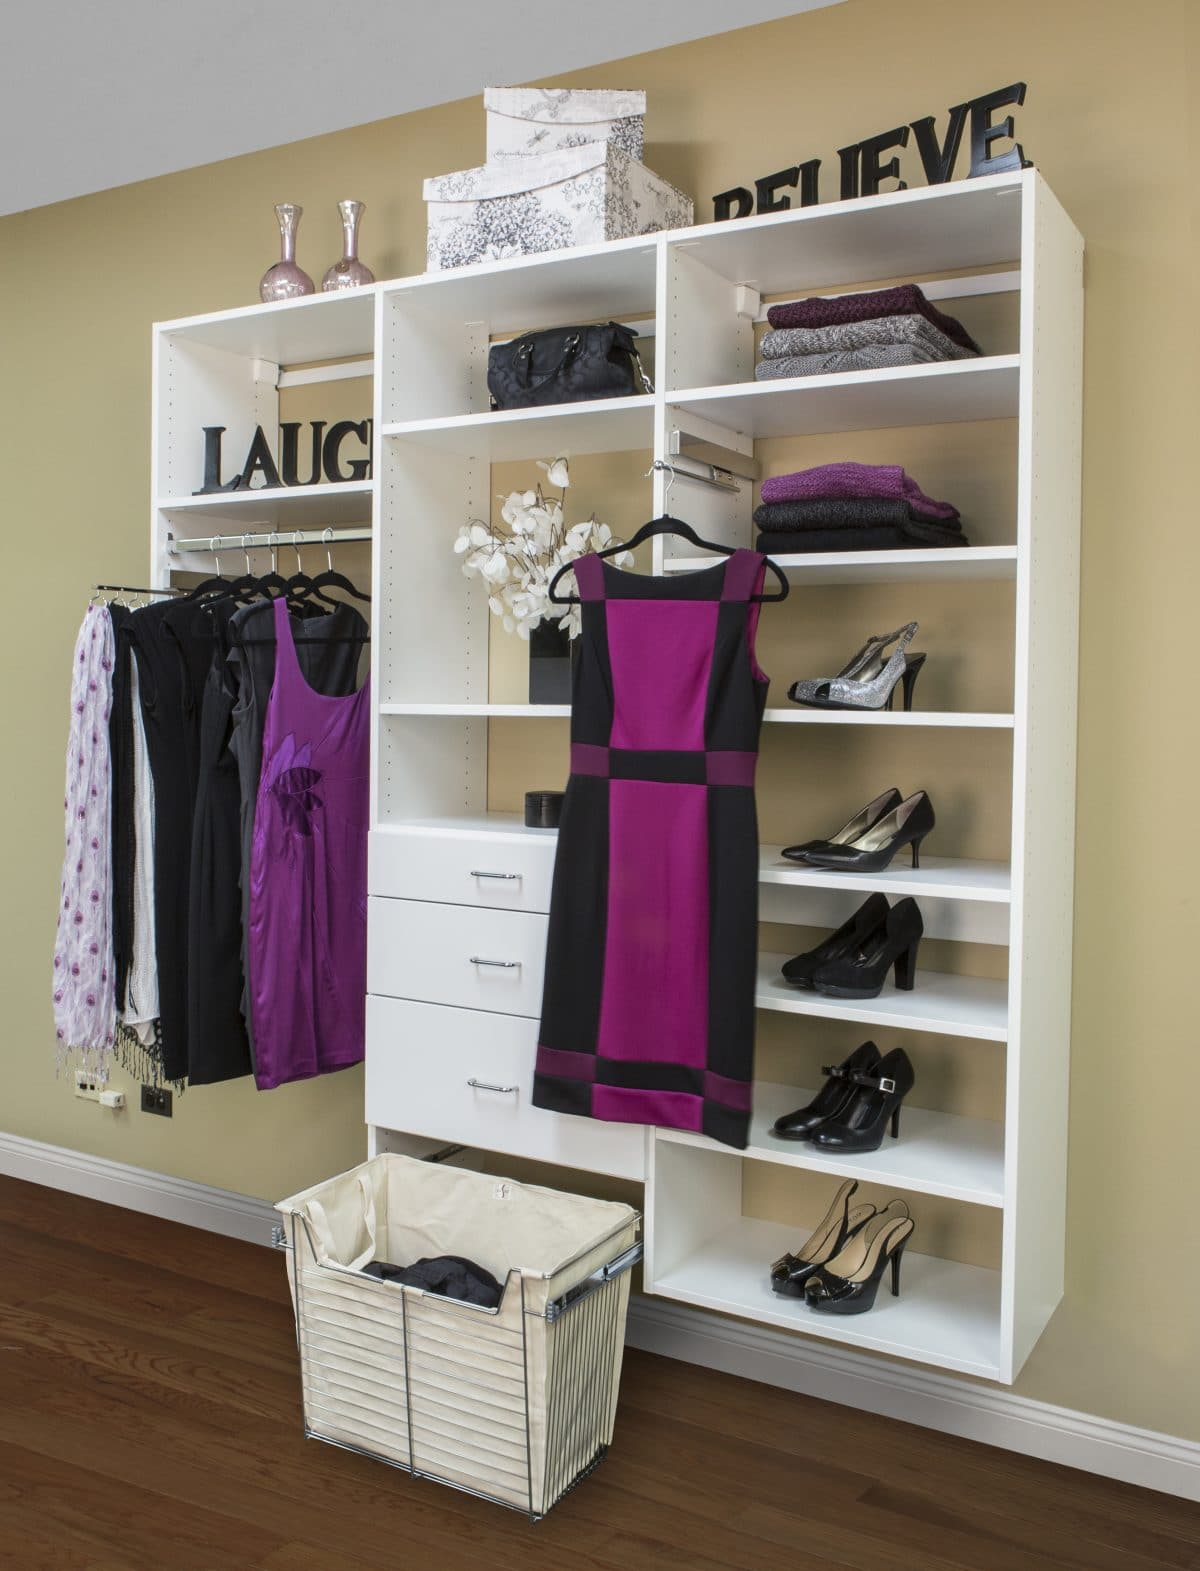 CUSTOM REACH IN CLOSET WITH CENTER DRAWERS, SHELVES AND PULL OUT LAUNDRY  BASKET